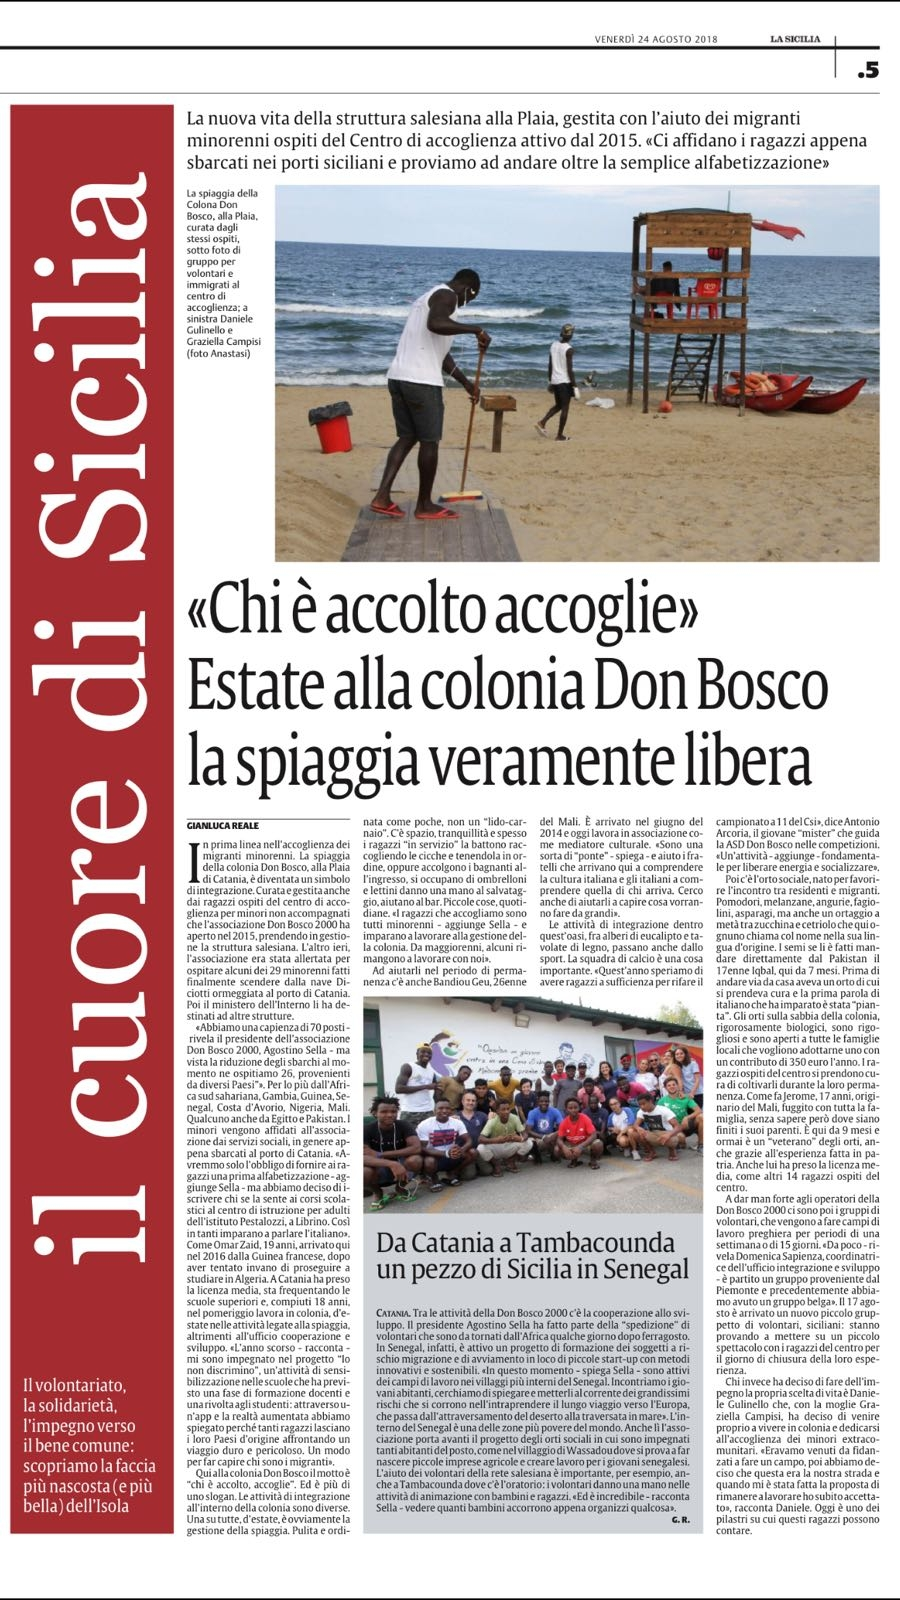 Un'estate alla colonia Don Bosco: la spiaggia veramente libera